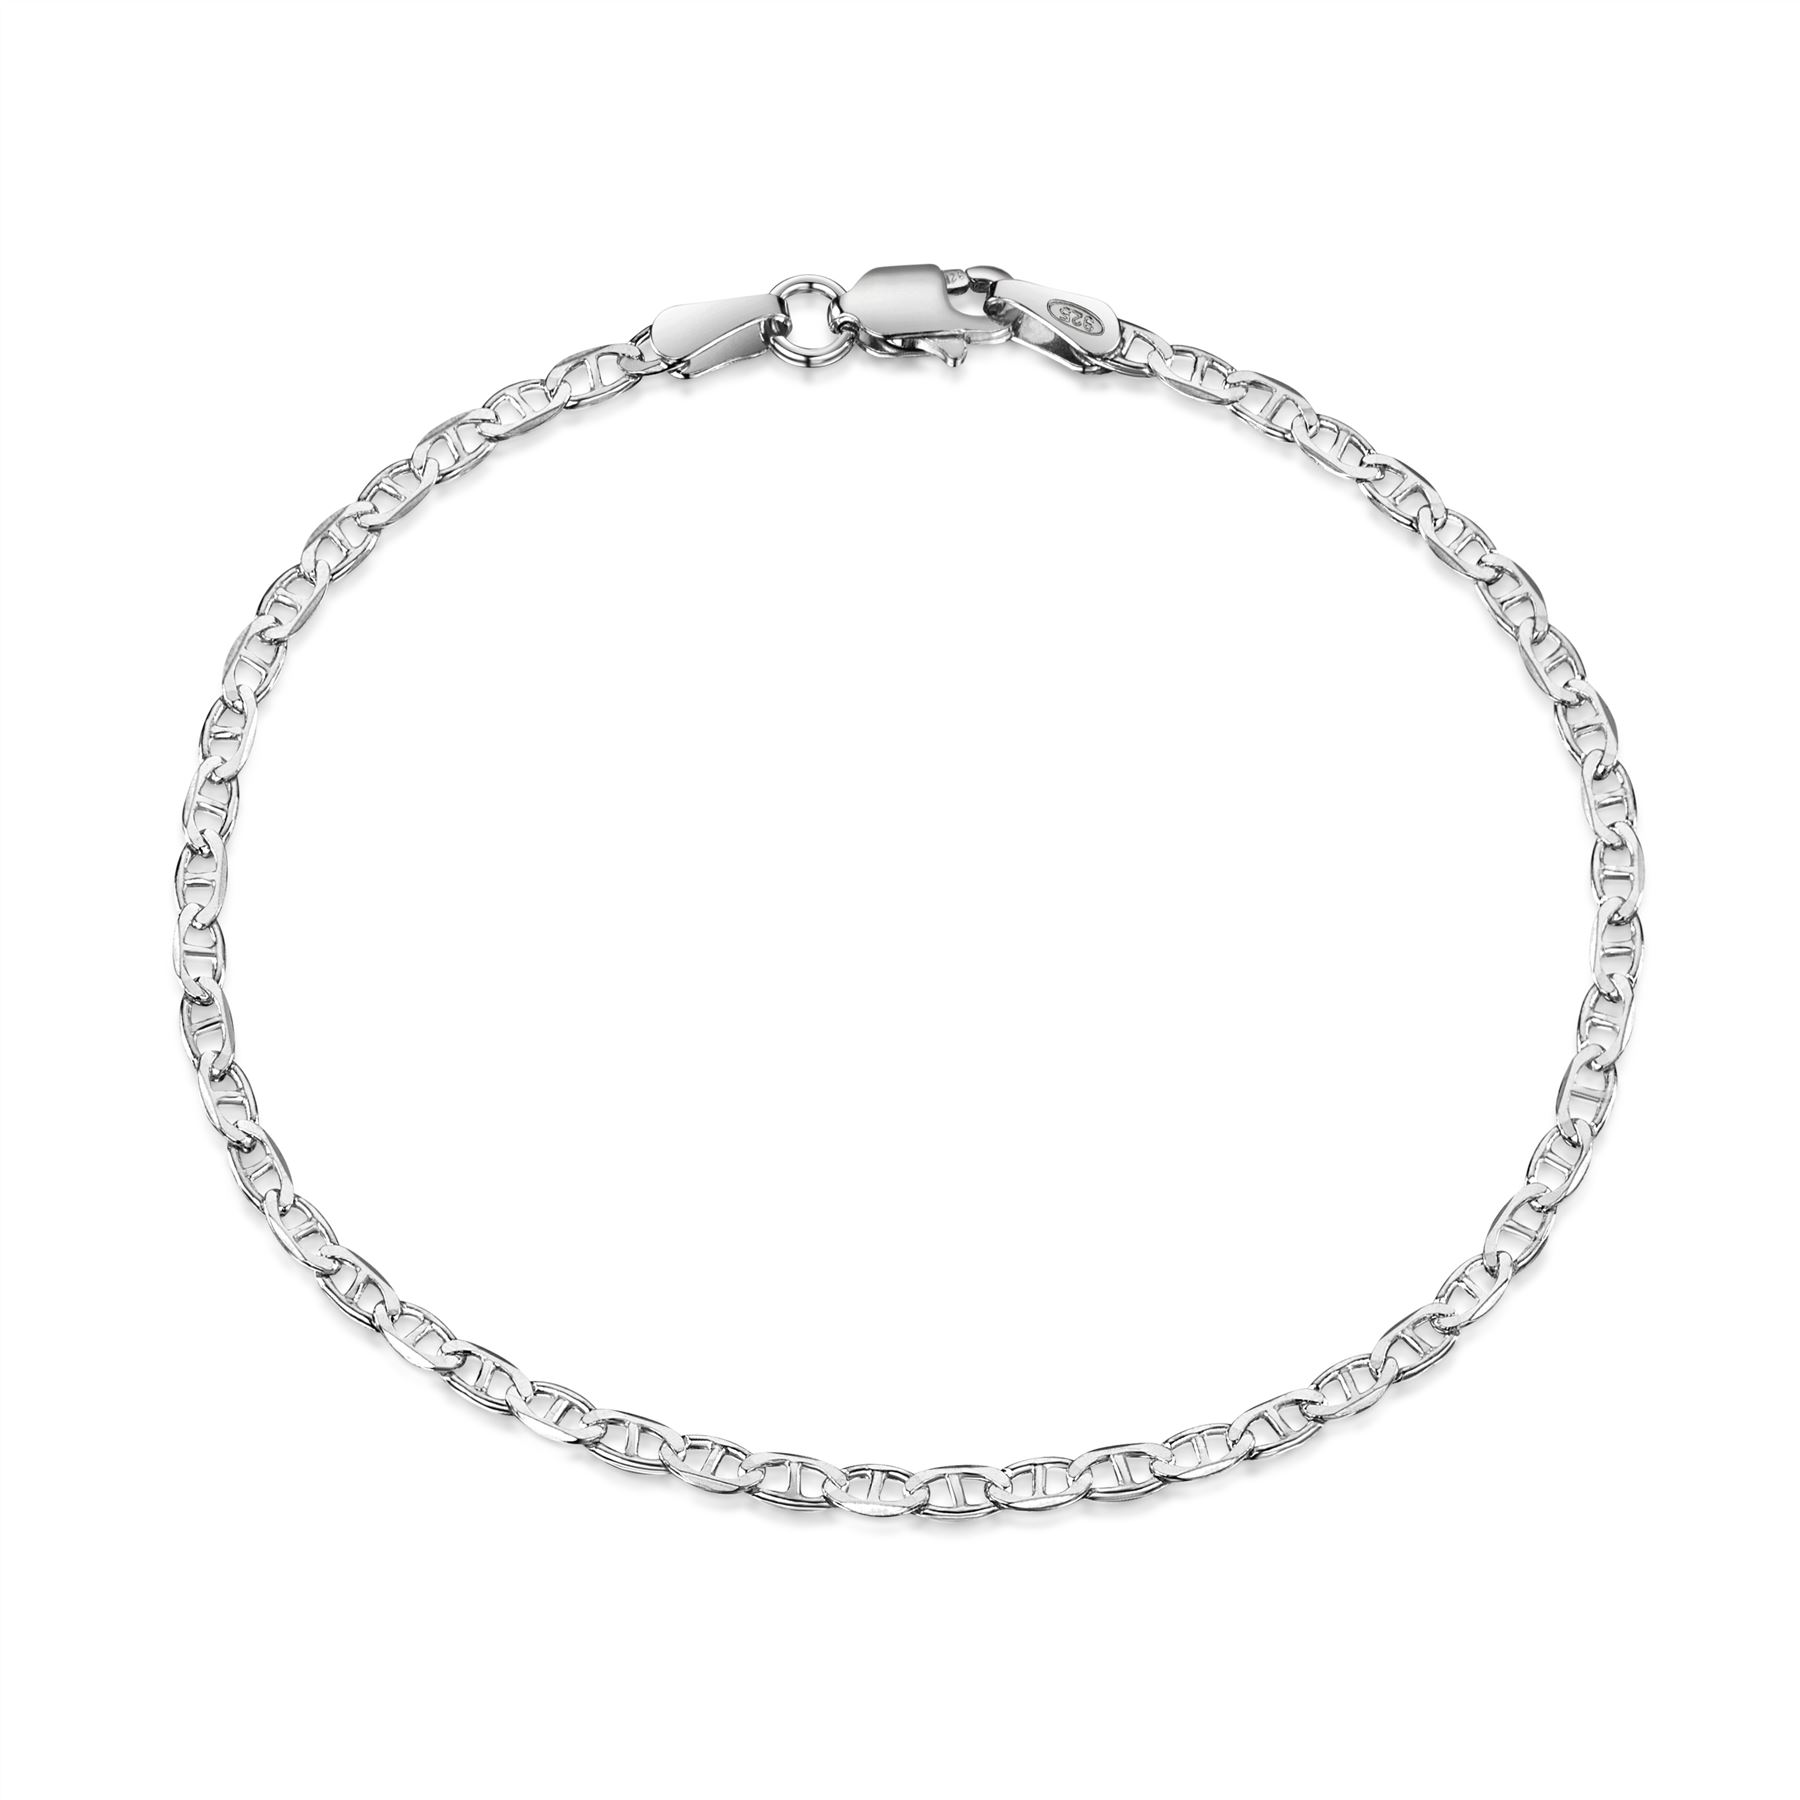 Amberta-Jewelry-Genuine-925-Sterling-Silver-Bracelet-Bangle-Chain-Made-in-Italy thumbnail 32